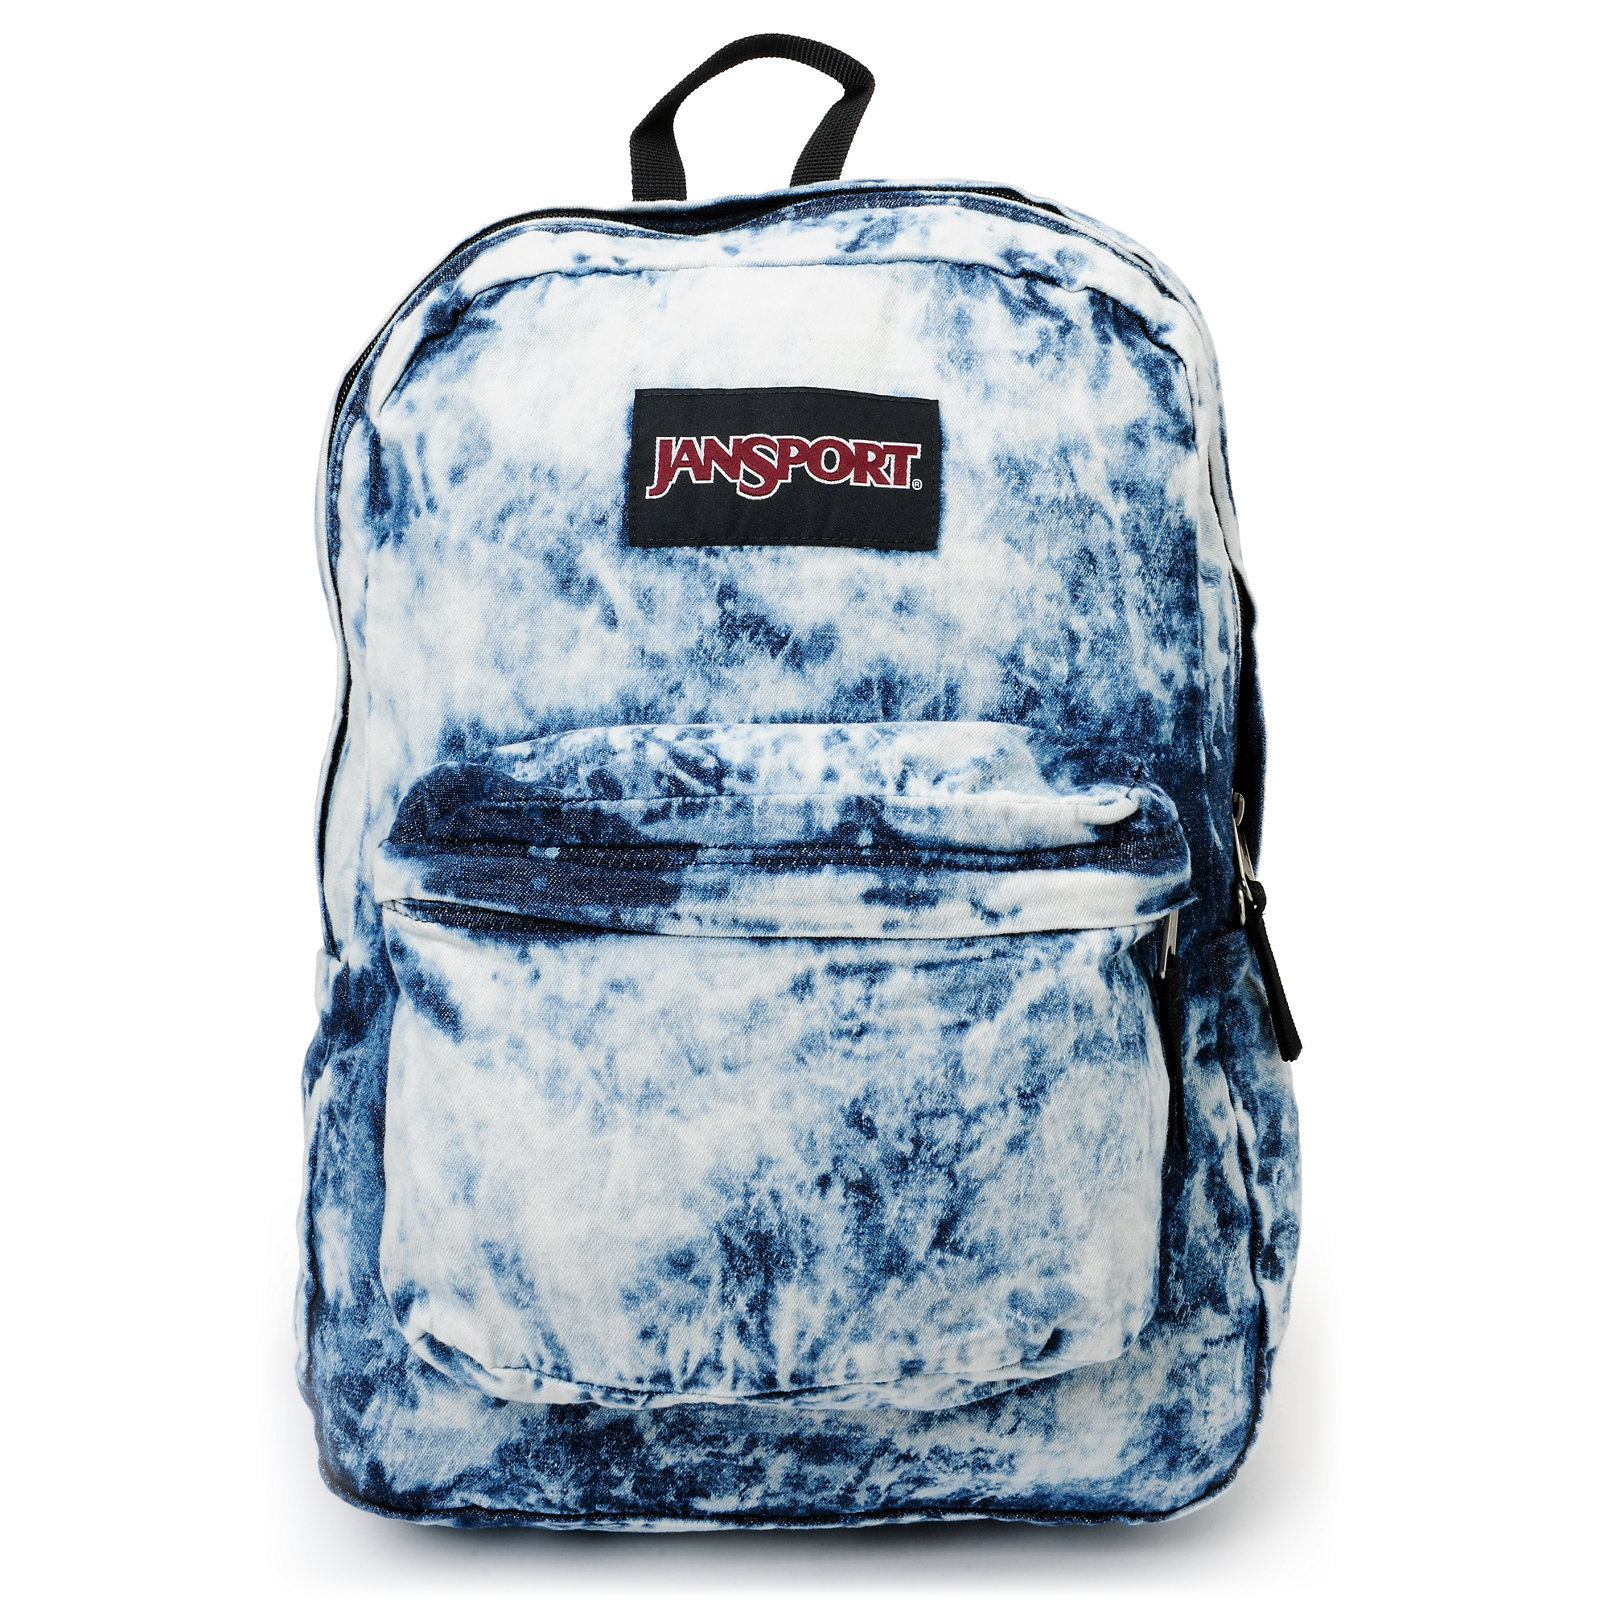 Jansport Denim Daze Acid Blue Backpack from Zumiez ... Denim Jansport Backpack